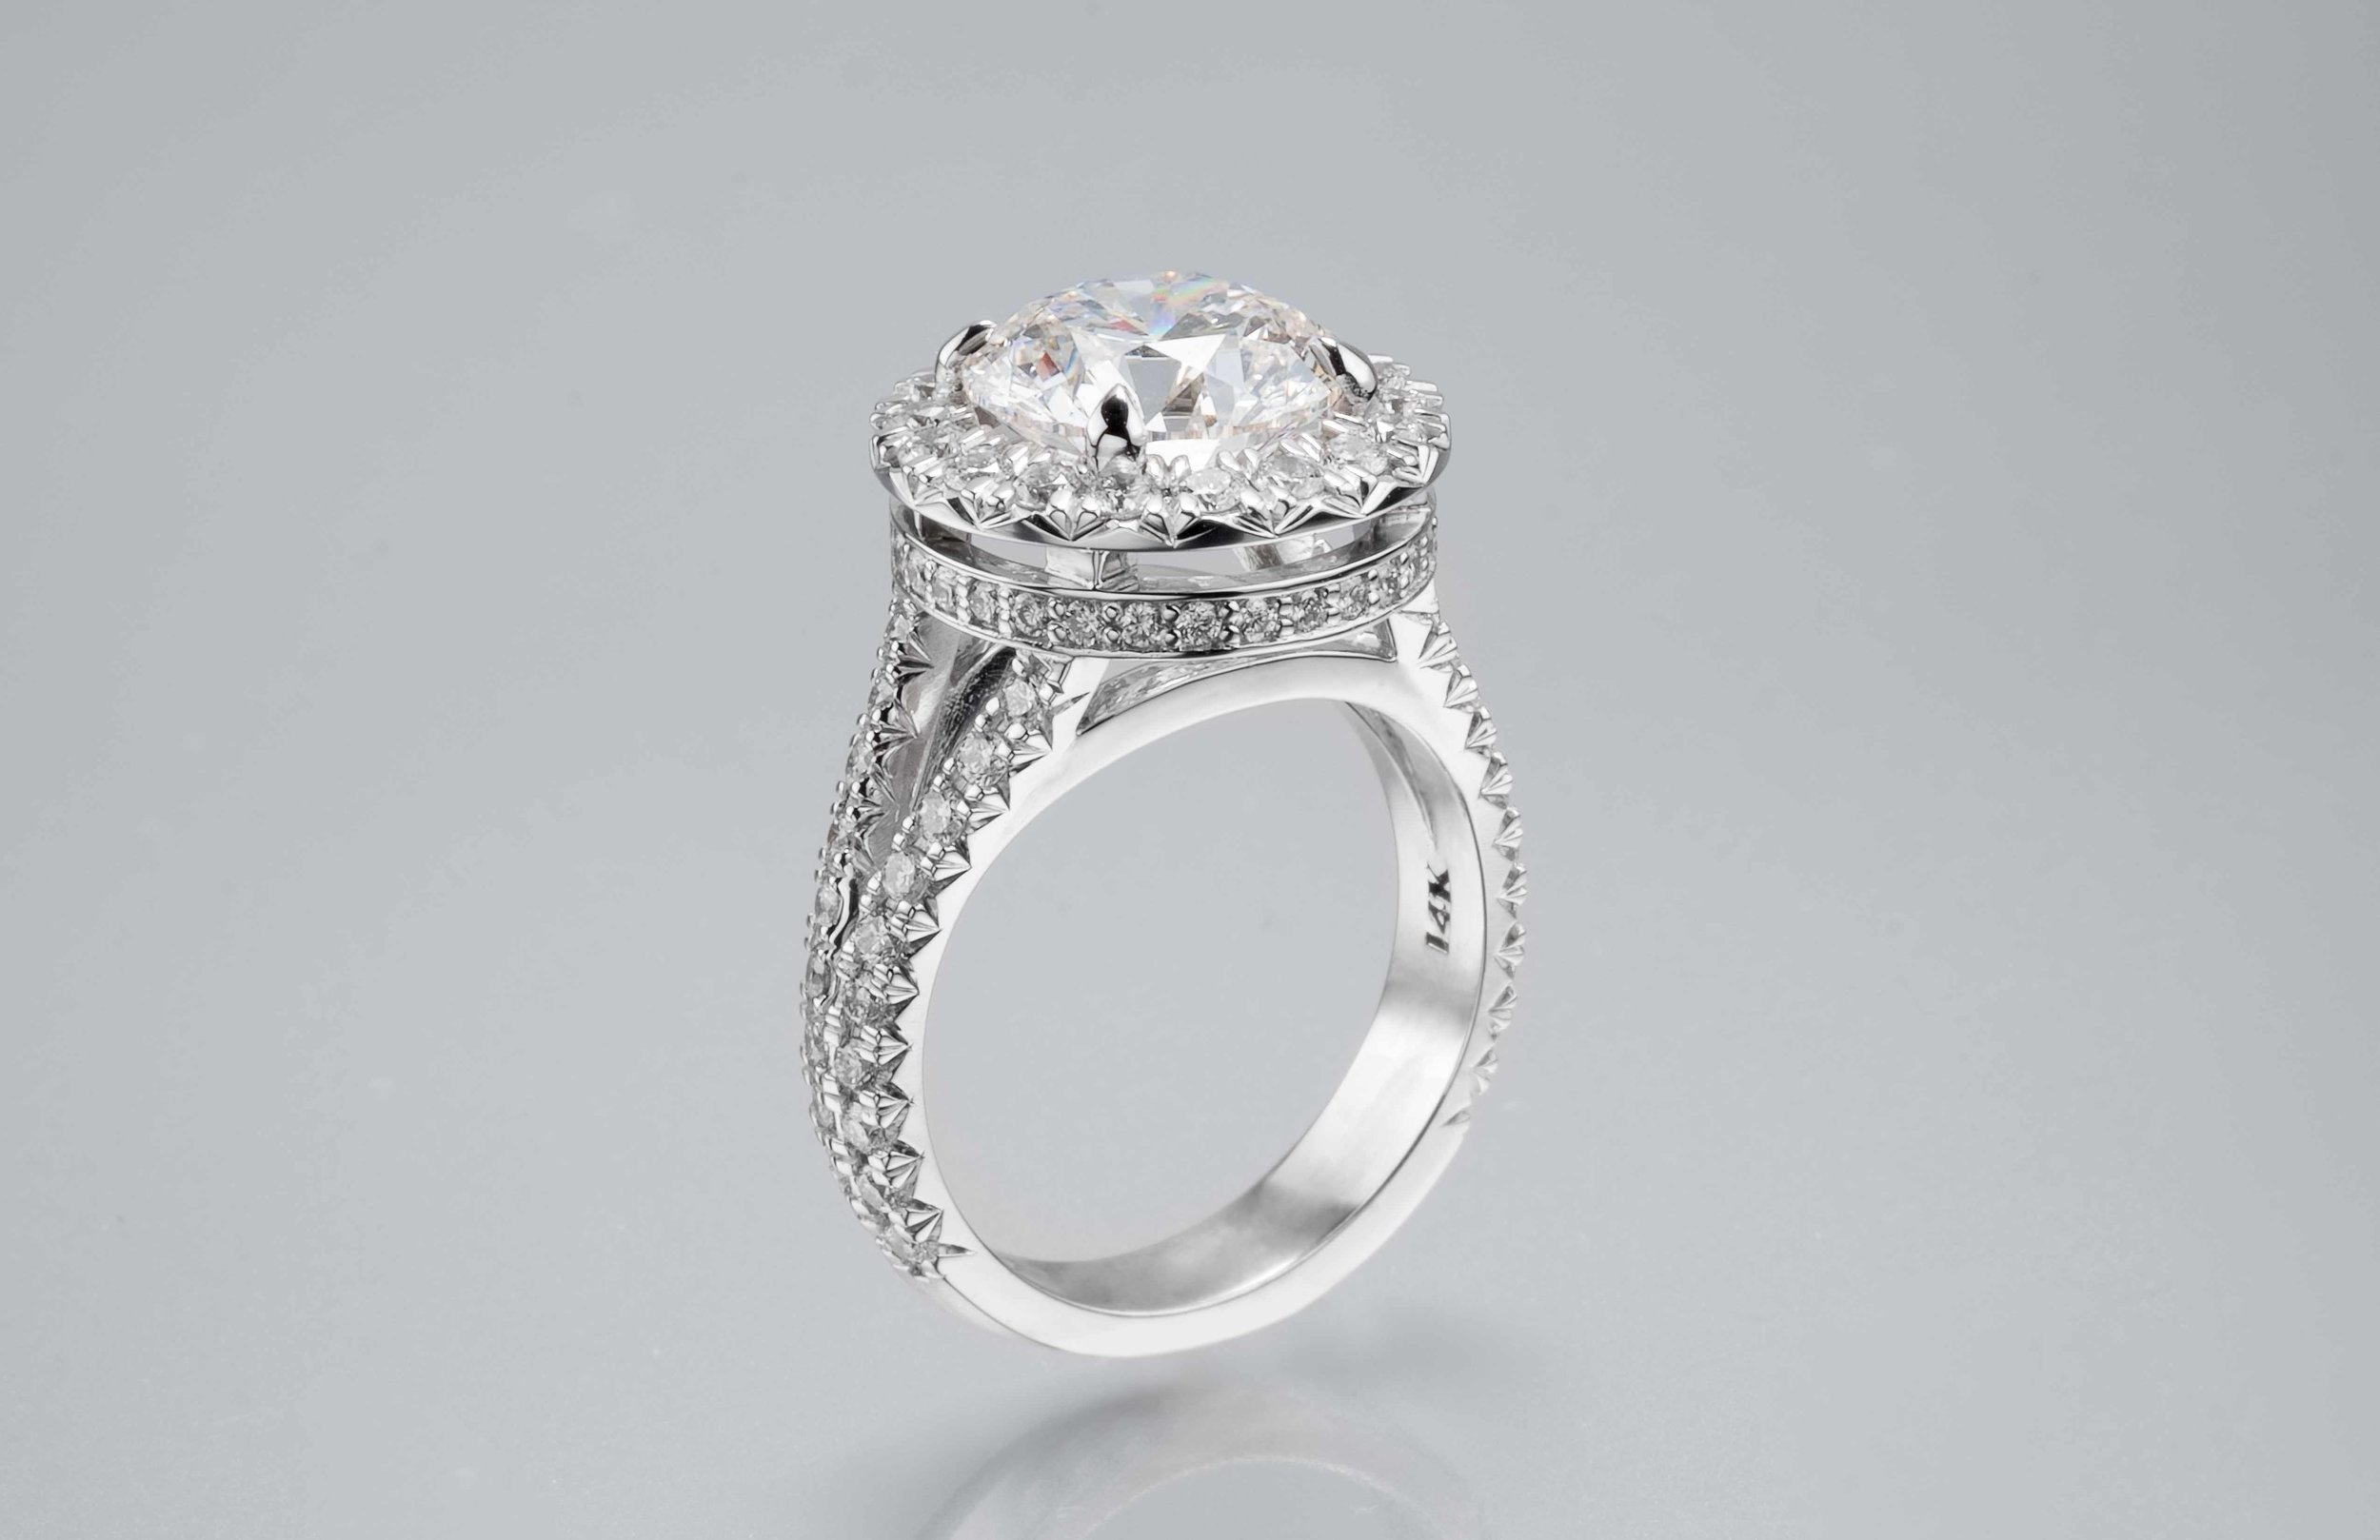 3 Carat French Cut Double Halo Ring in 14K White Gold - This intricate, handmade ring is truly a stunning piece.